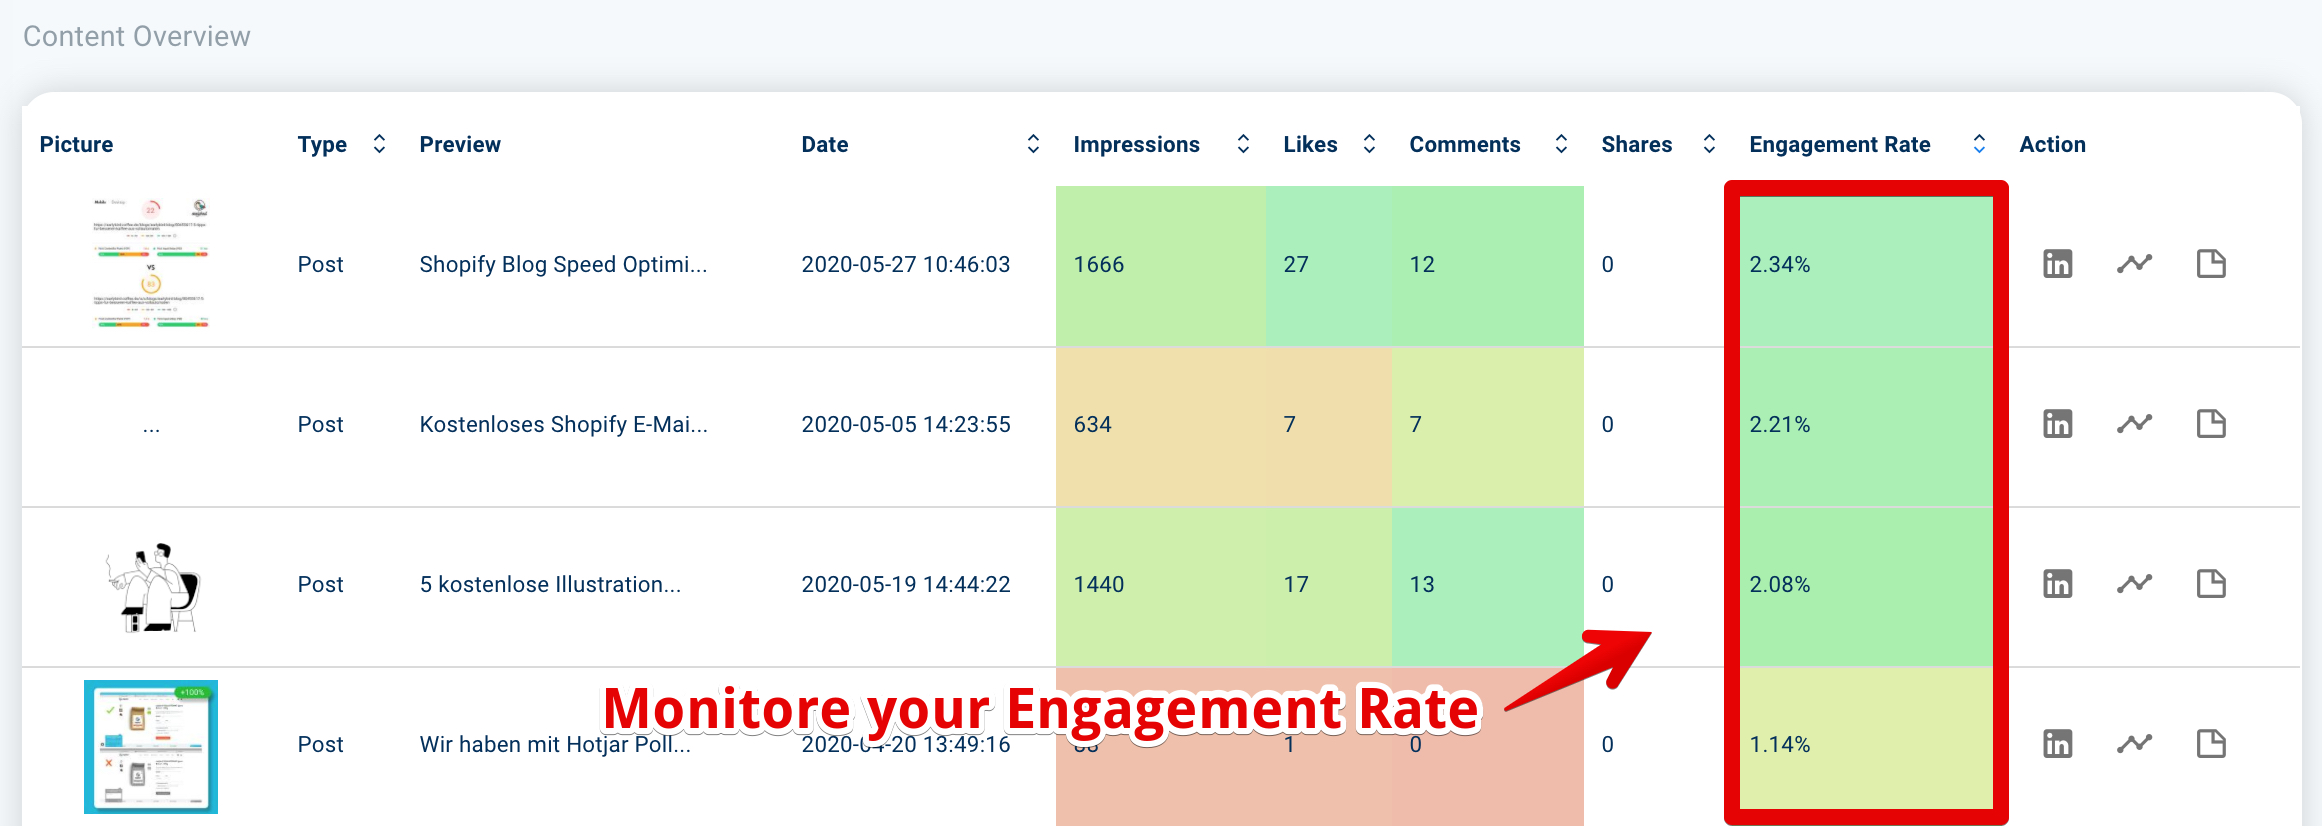 LinkedIn Analytics Tool to calculate the engagement rate